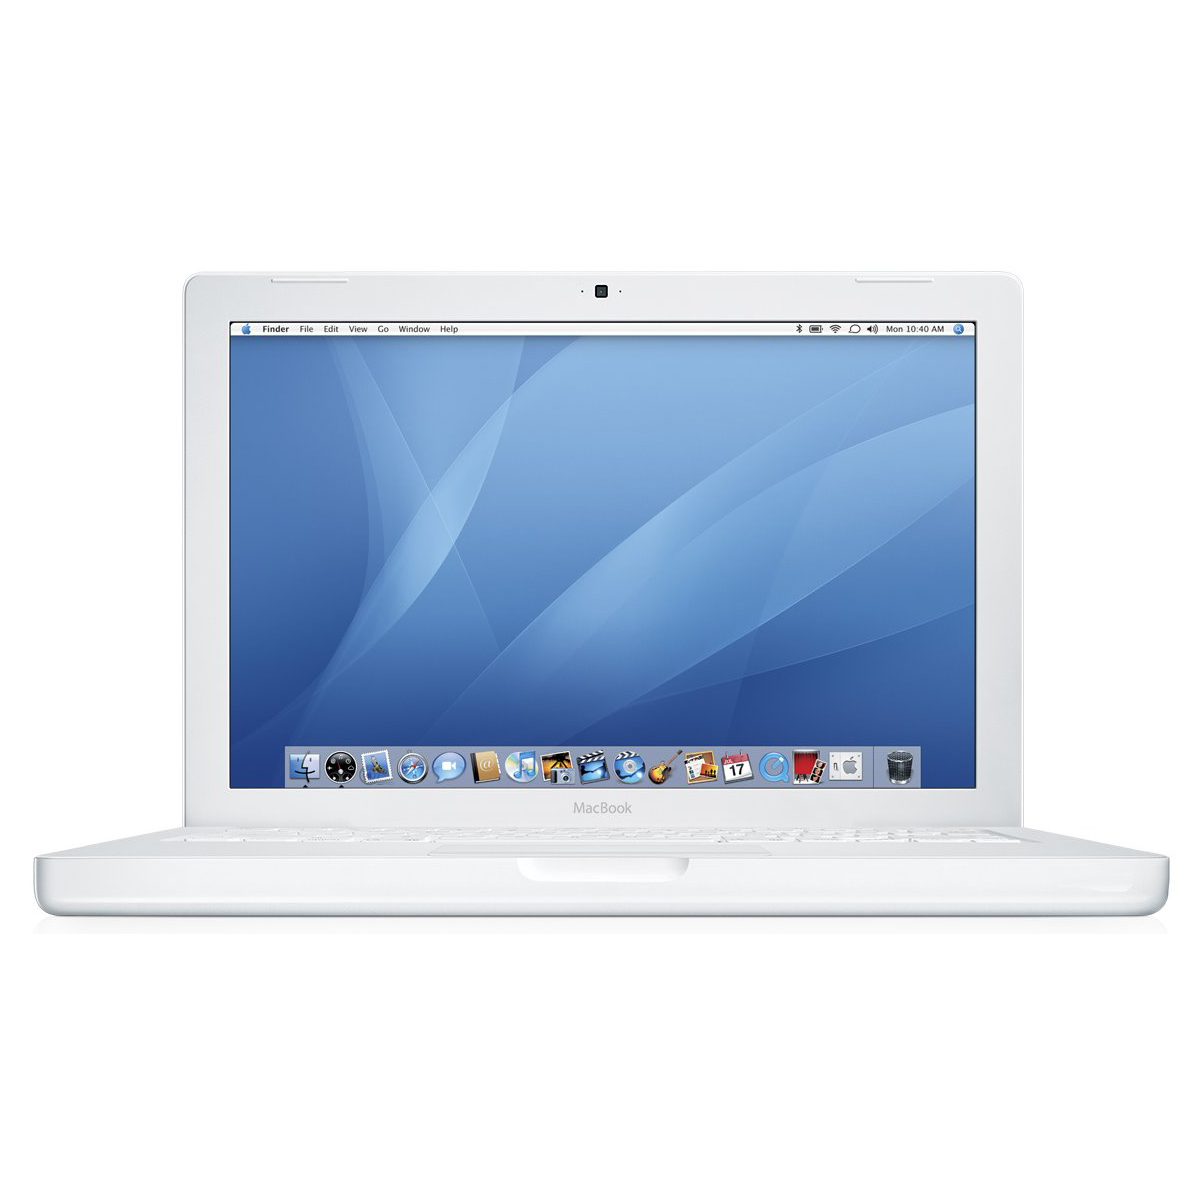 "Refurbished Apple MacBook 13.3"" Laptop Intel Core 2 T8300 2.4GHz 2GB 160GB White - MB403LL/A"